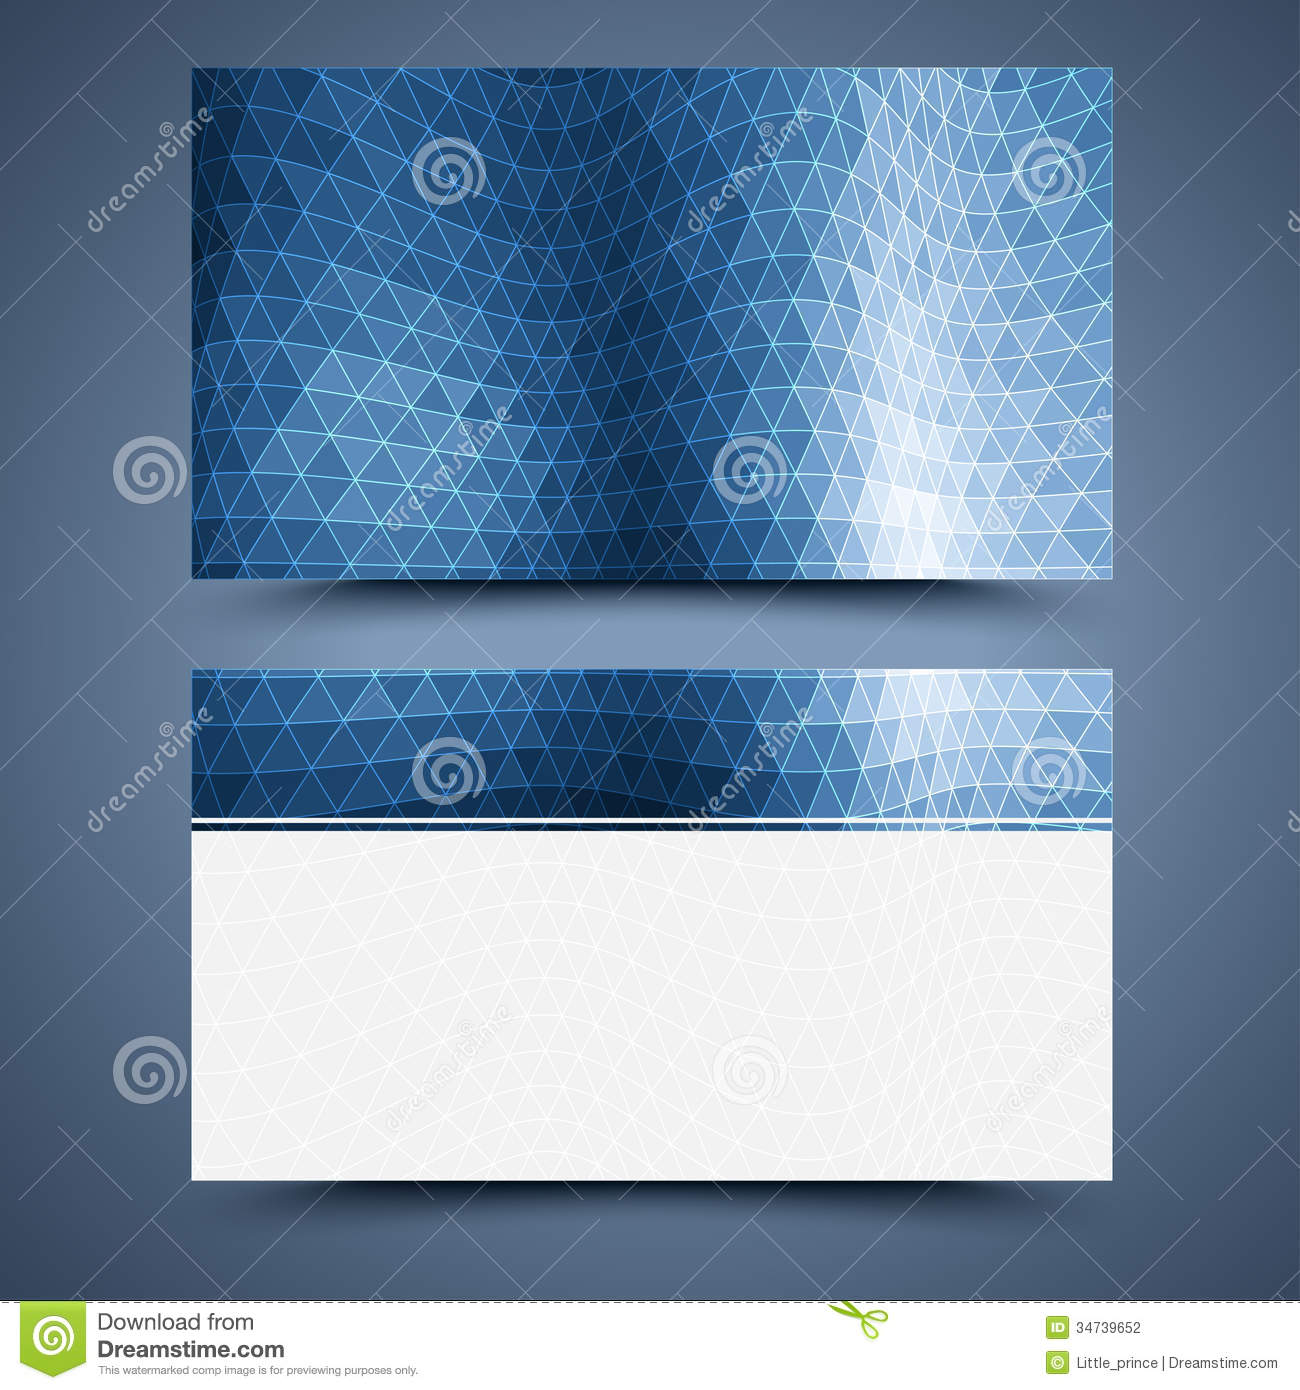 Blue business card template abstract background stock vector download blue business card template abstract background stock vector illustration of graphic backgrounds wajeb Choice Image